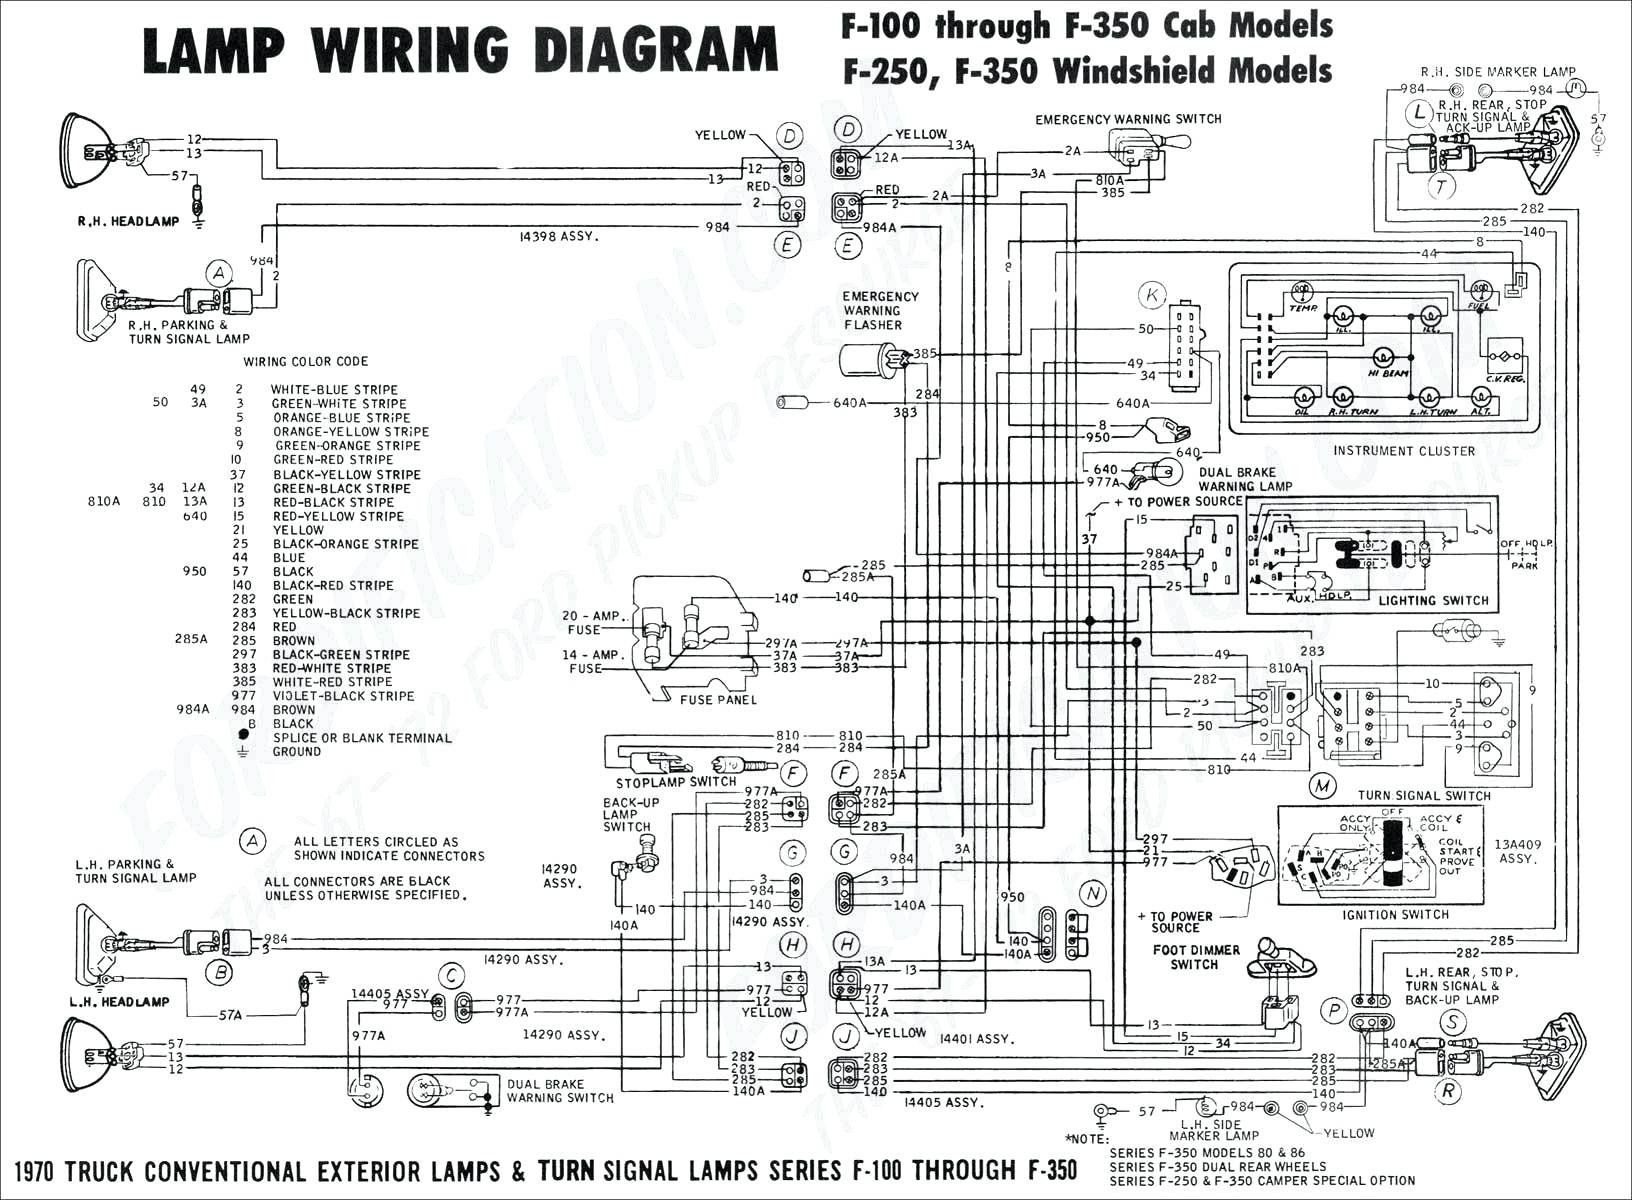 2006 ford f350 wiring diagram data wiring diagrams \u2022 regarding 2006 Mustang Wiring Diagram 2006 ford f350 wiring diagram data wiring diagrams \u2022 regarding ford f250 wiring diagram